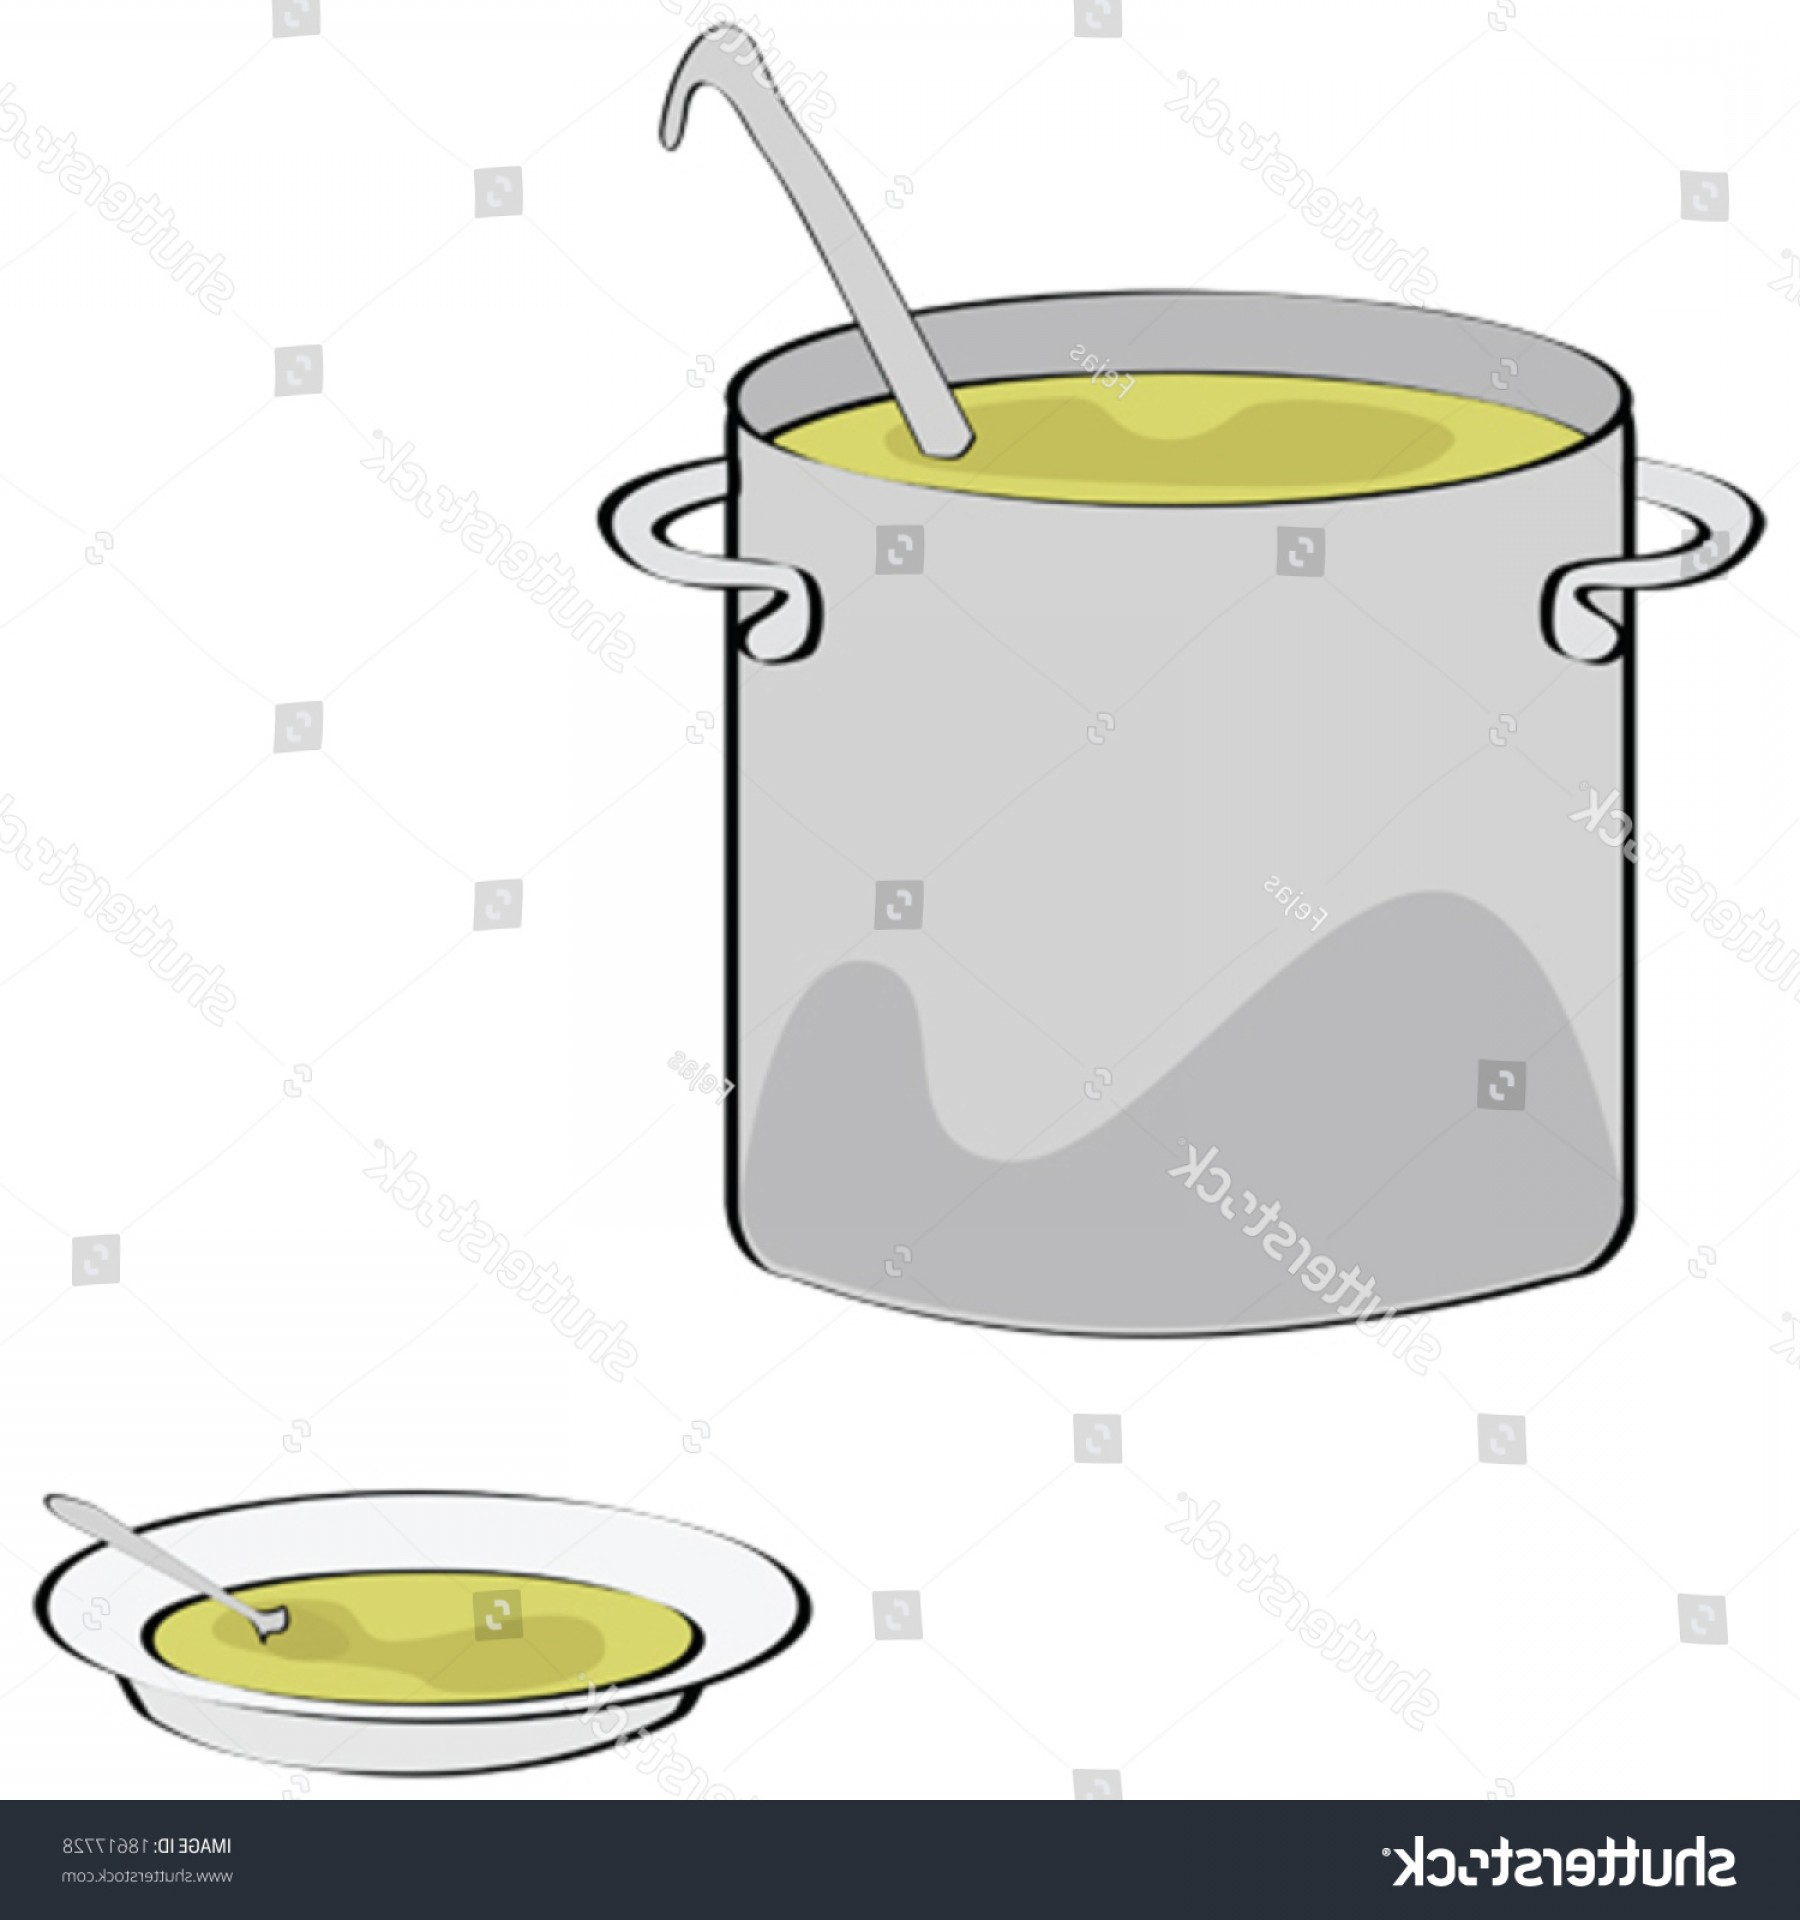 Big Cook With Cooking Pot Vector: Vector Illustration Big Cooking Pot Plate